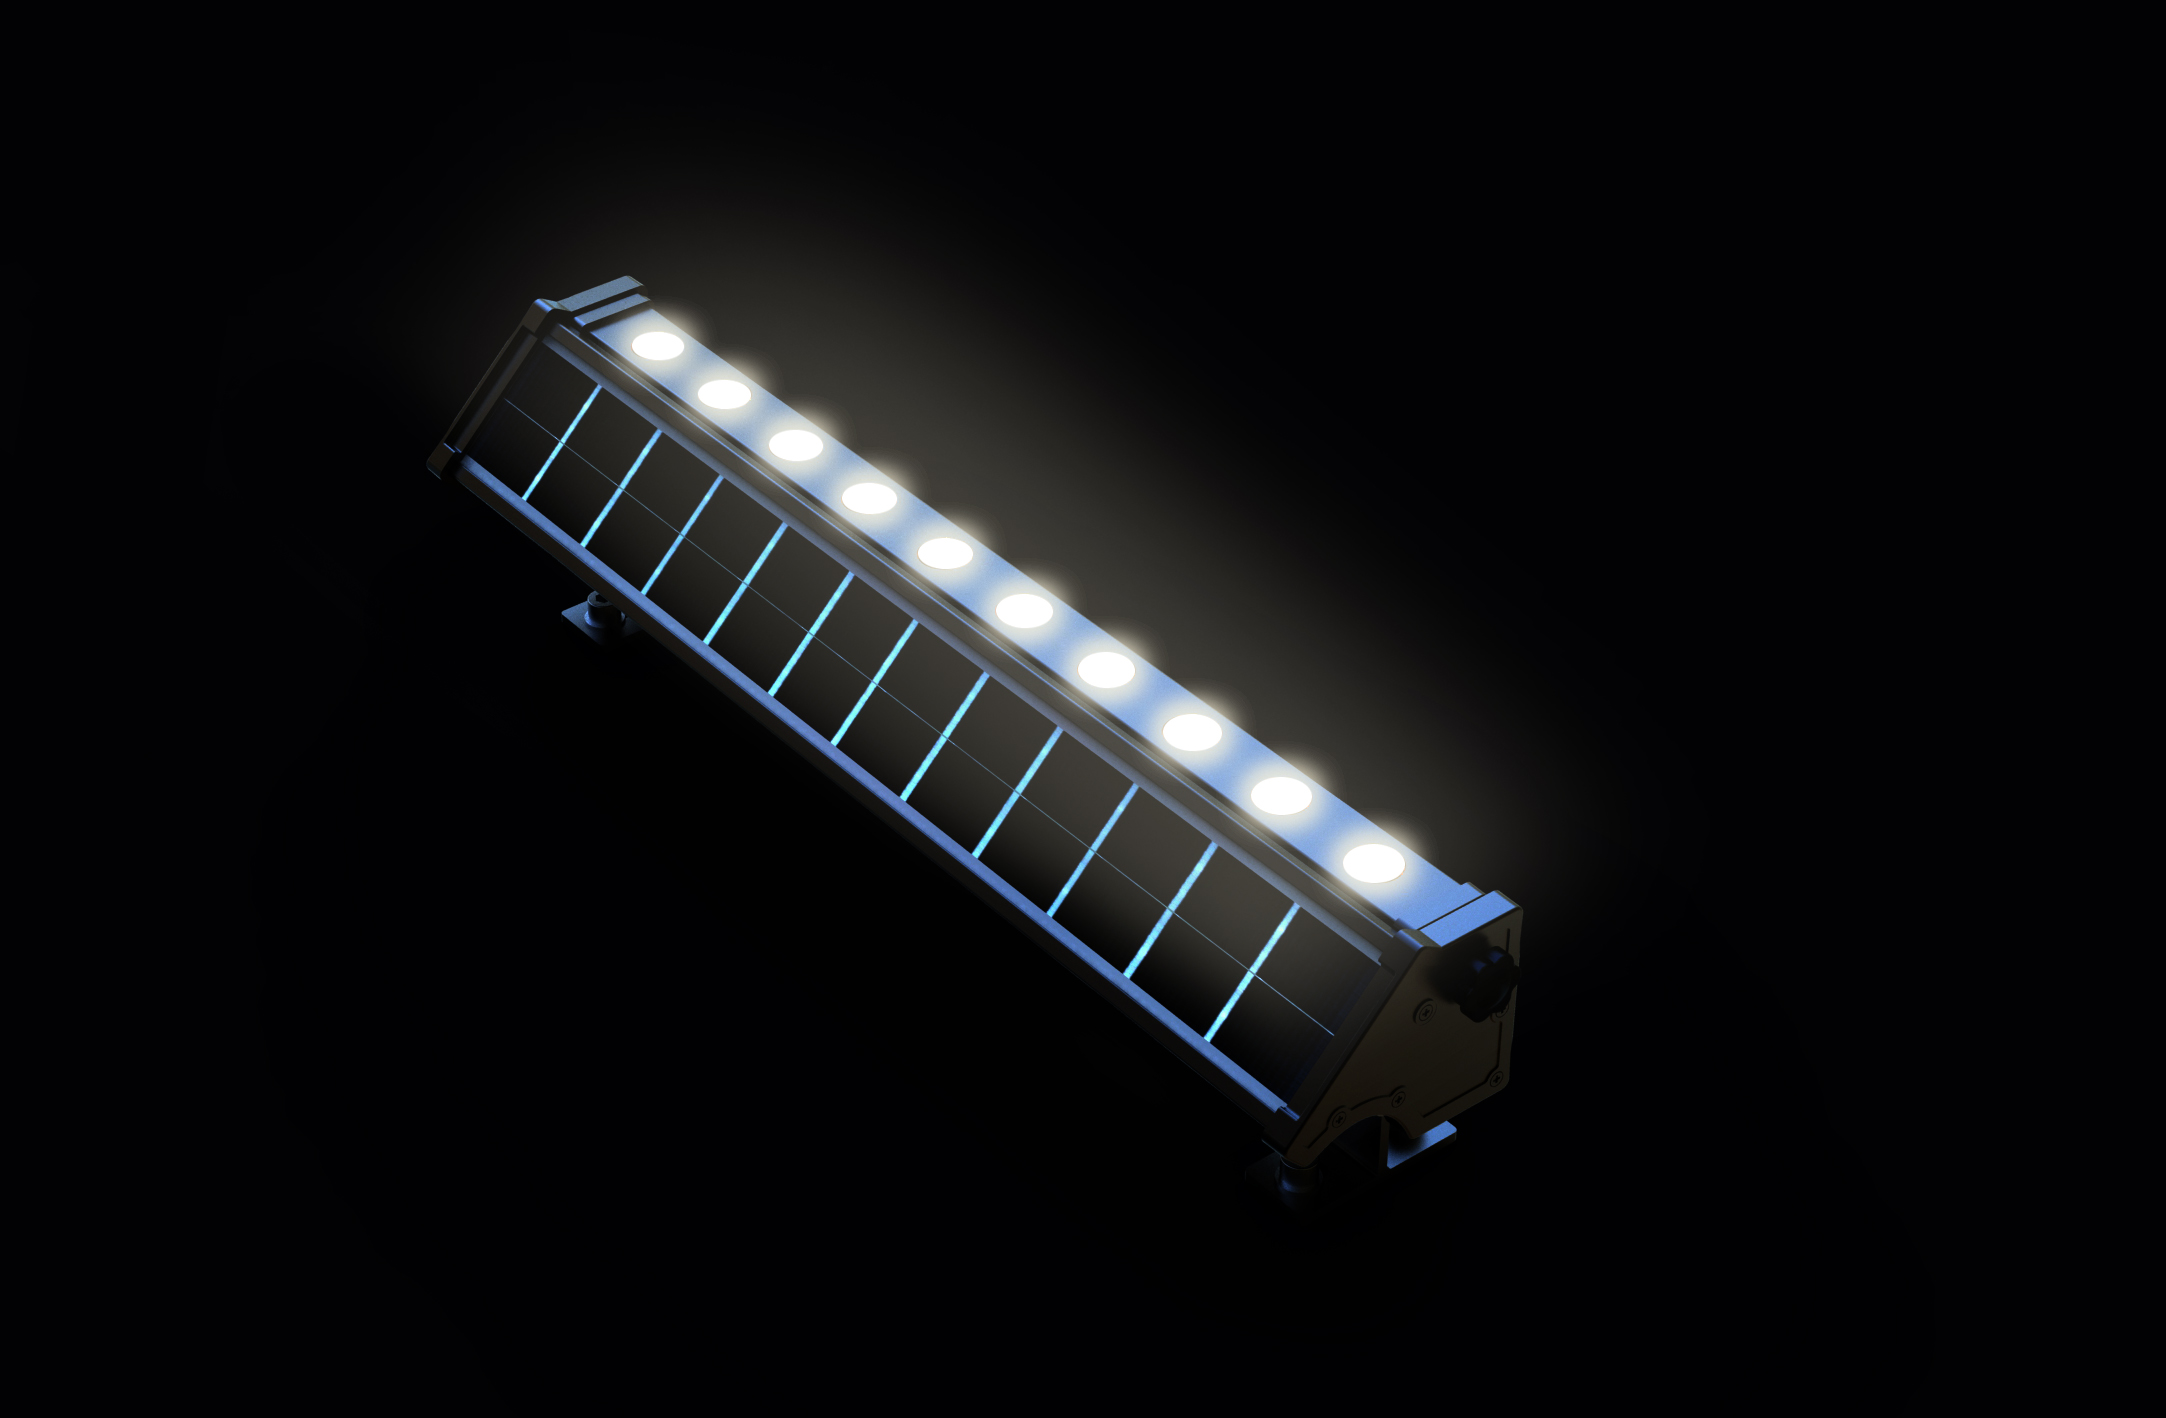 Star Wall Light Bhs : 2016 New Design Led Star Wall Light Manufactured In China - Buy Led Star Wall Light,Led Star ...